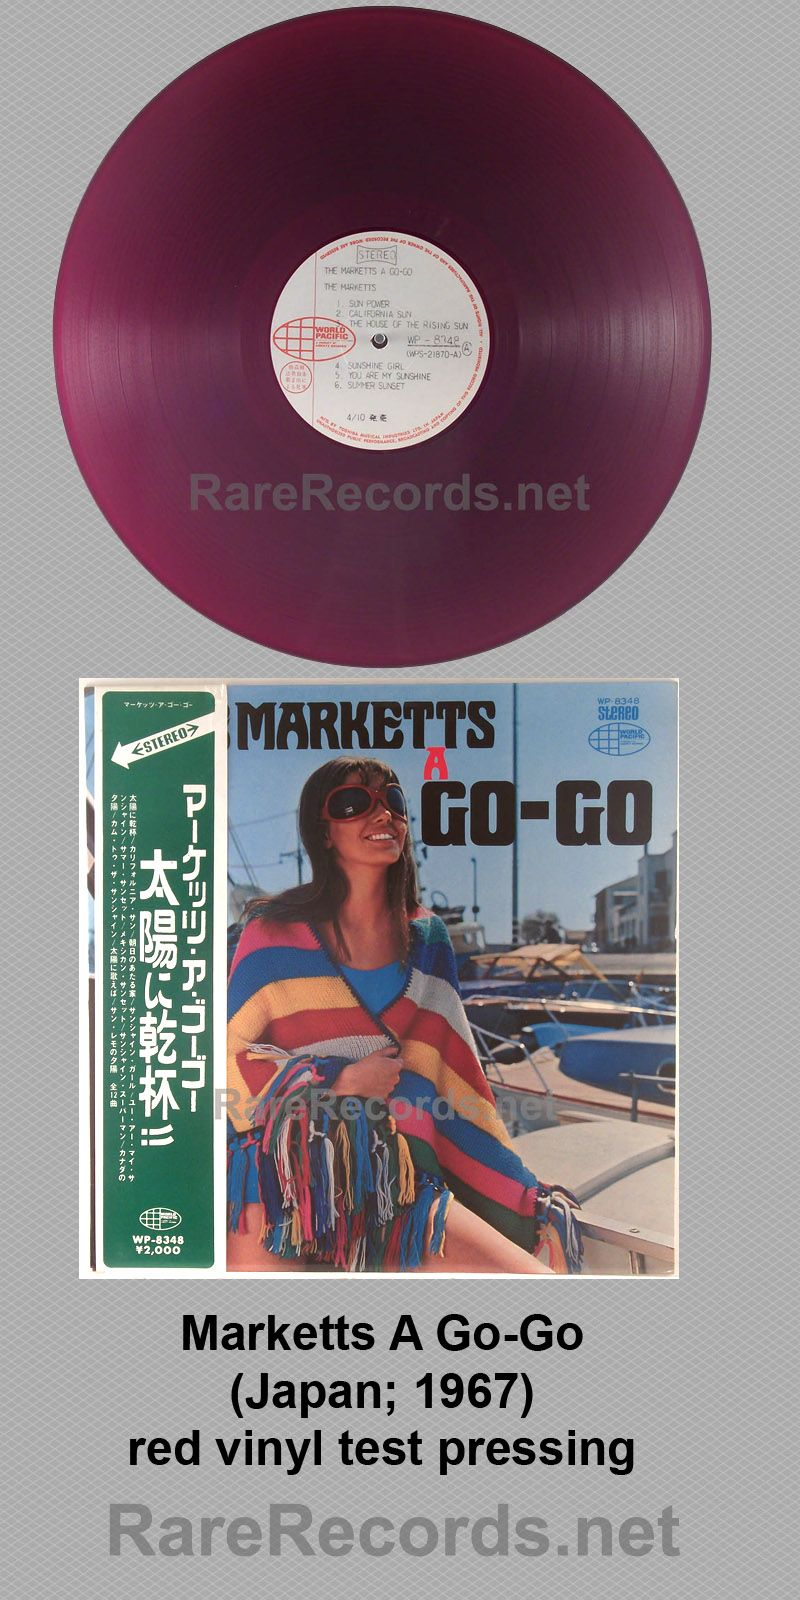 Marketts Marketts A Go Go Original Japan Red Vinyl Test Pressing Lp With Obi Test Pressing Vinyl The Originals